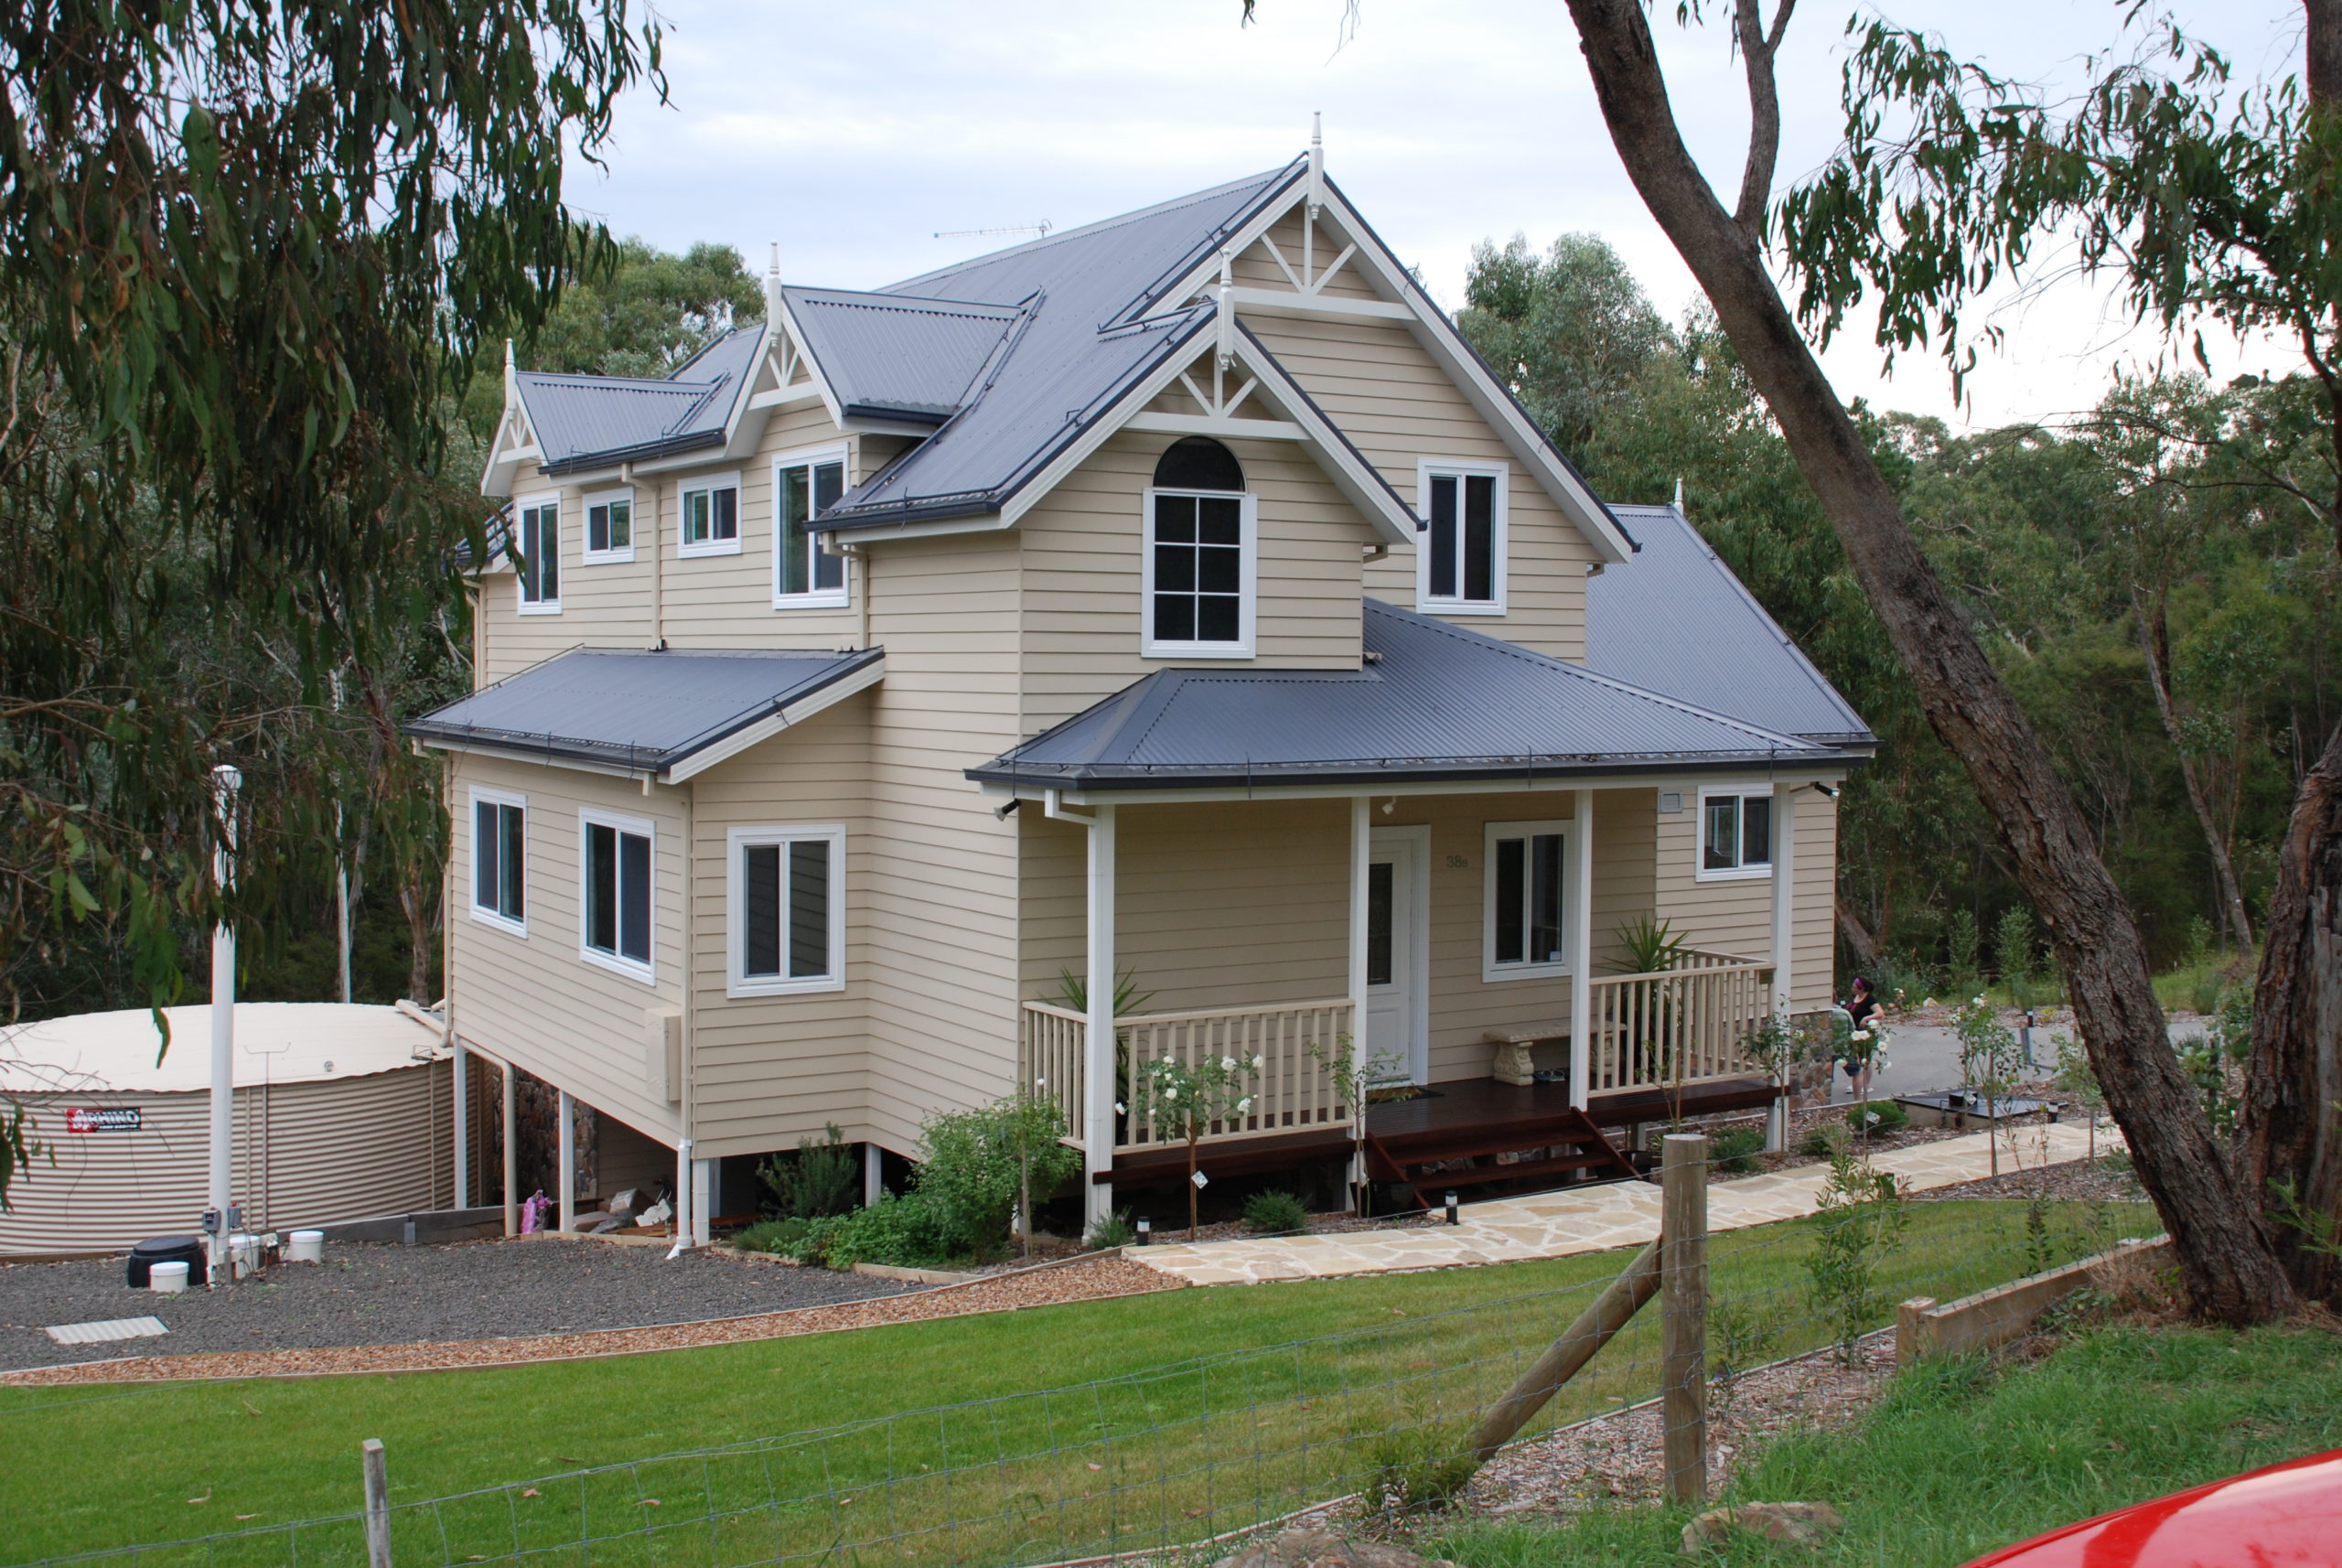 Warrandyte - American Style home country home rural property built by Farm Houses of Australia